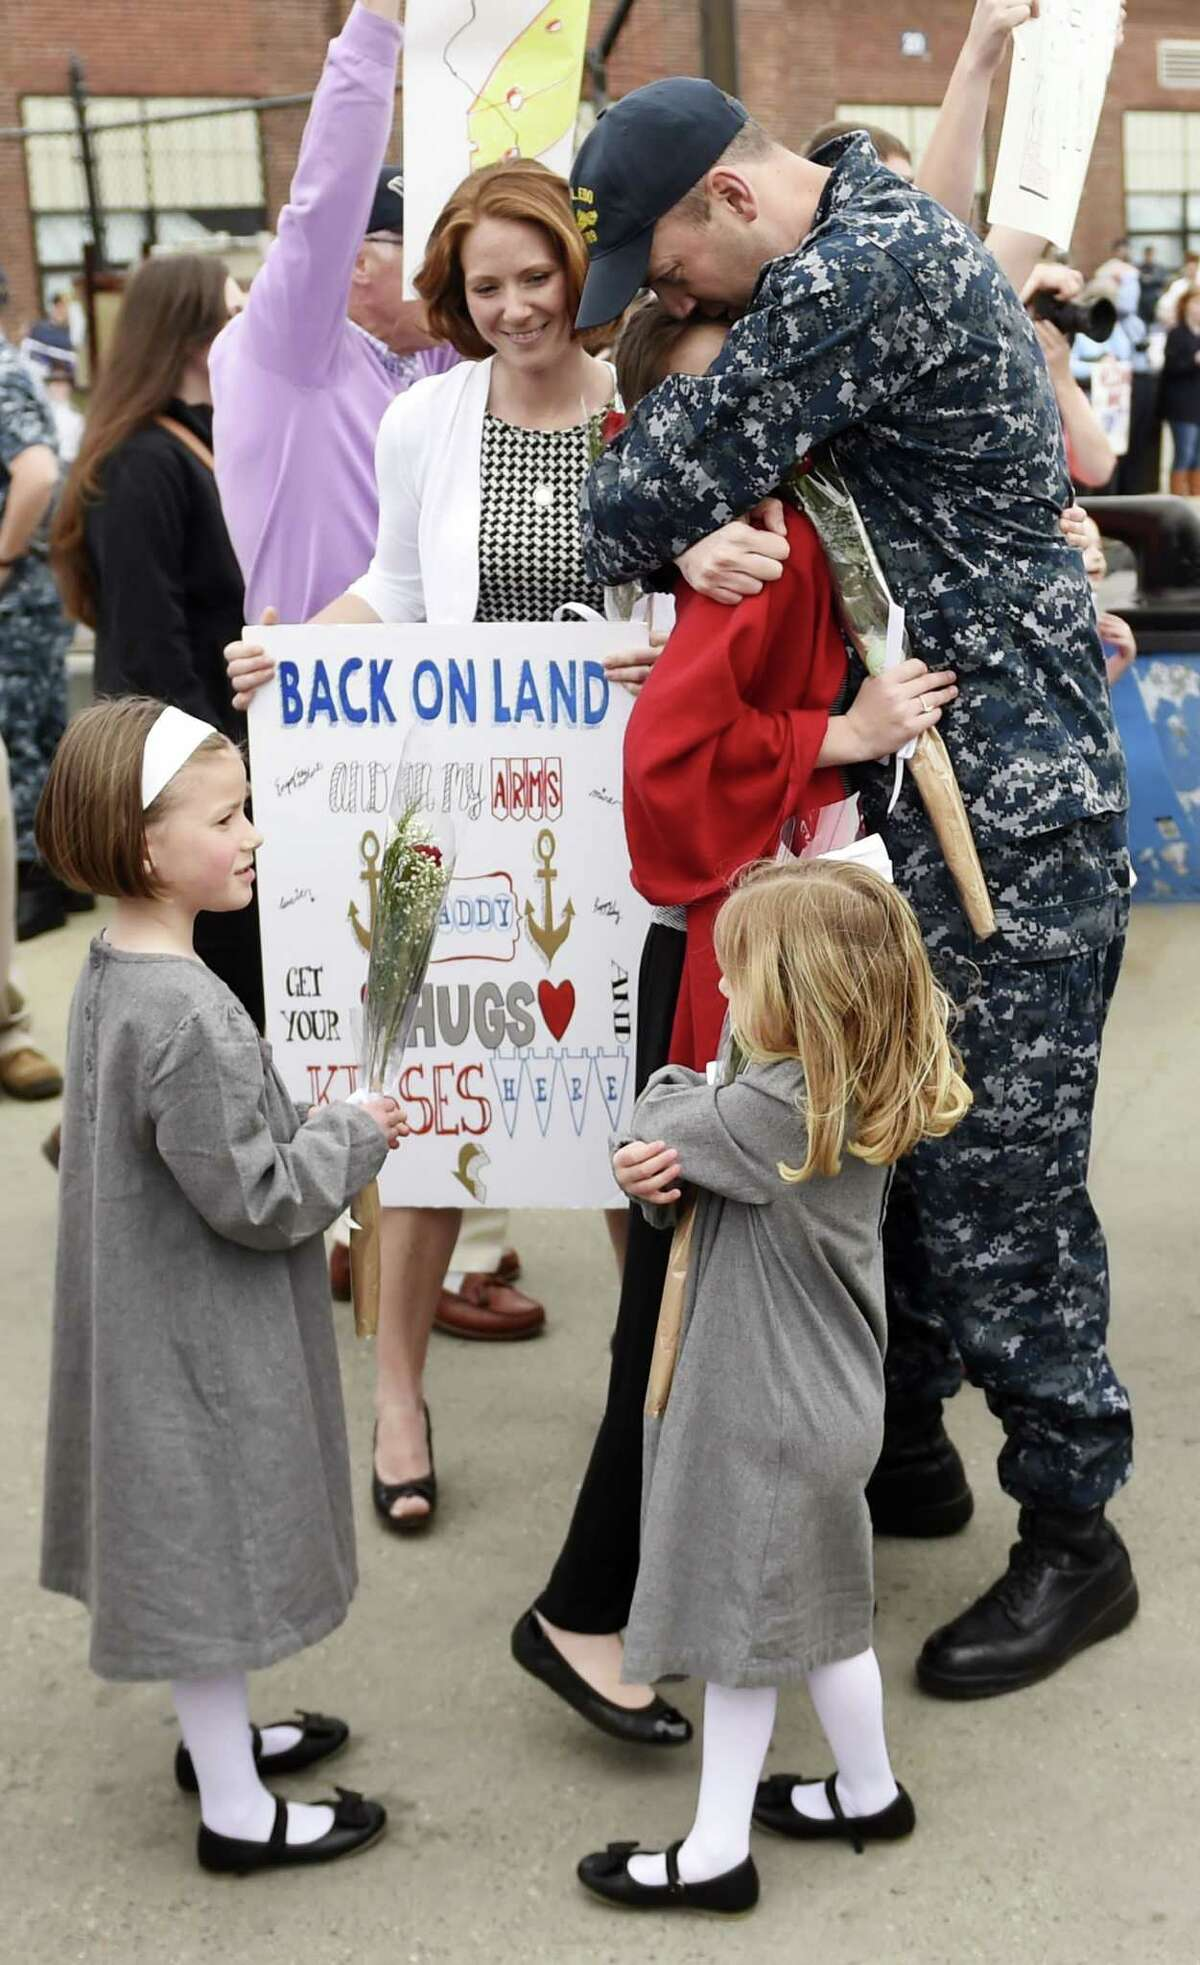 Lt. Cmdr. Jim Henry embraces his daughter Maddie, 13, while daughters Kit, 5, and Harper, 4, and wife Jess, back, look on as the U.S. Navy submarine USS Toledo (SSN 769) returns to the Navy Submarine Base in Groton, Conn., Monday, April 25, 2016, following a six-month deployment. The Toledo visited ports in Bahrain, France, Spain and Greece.